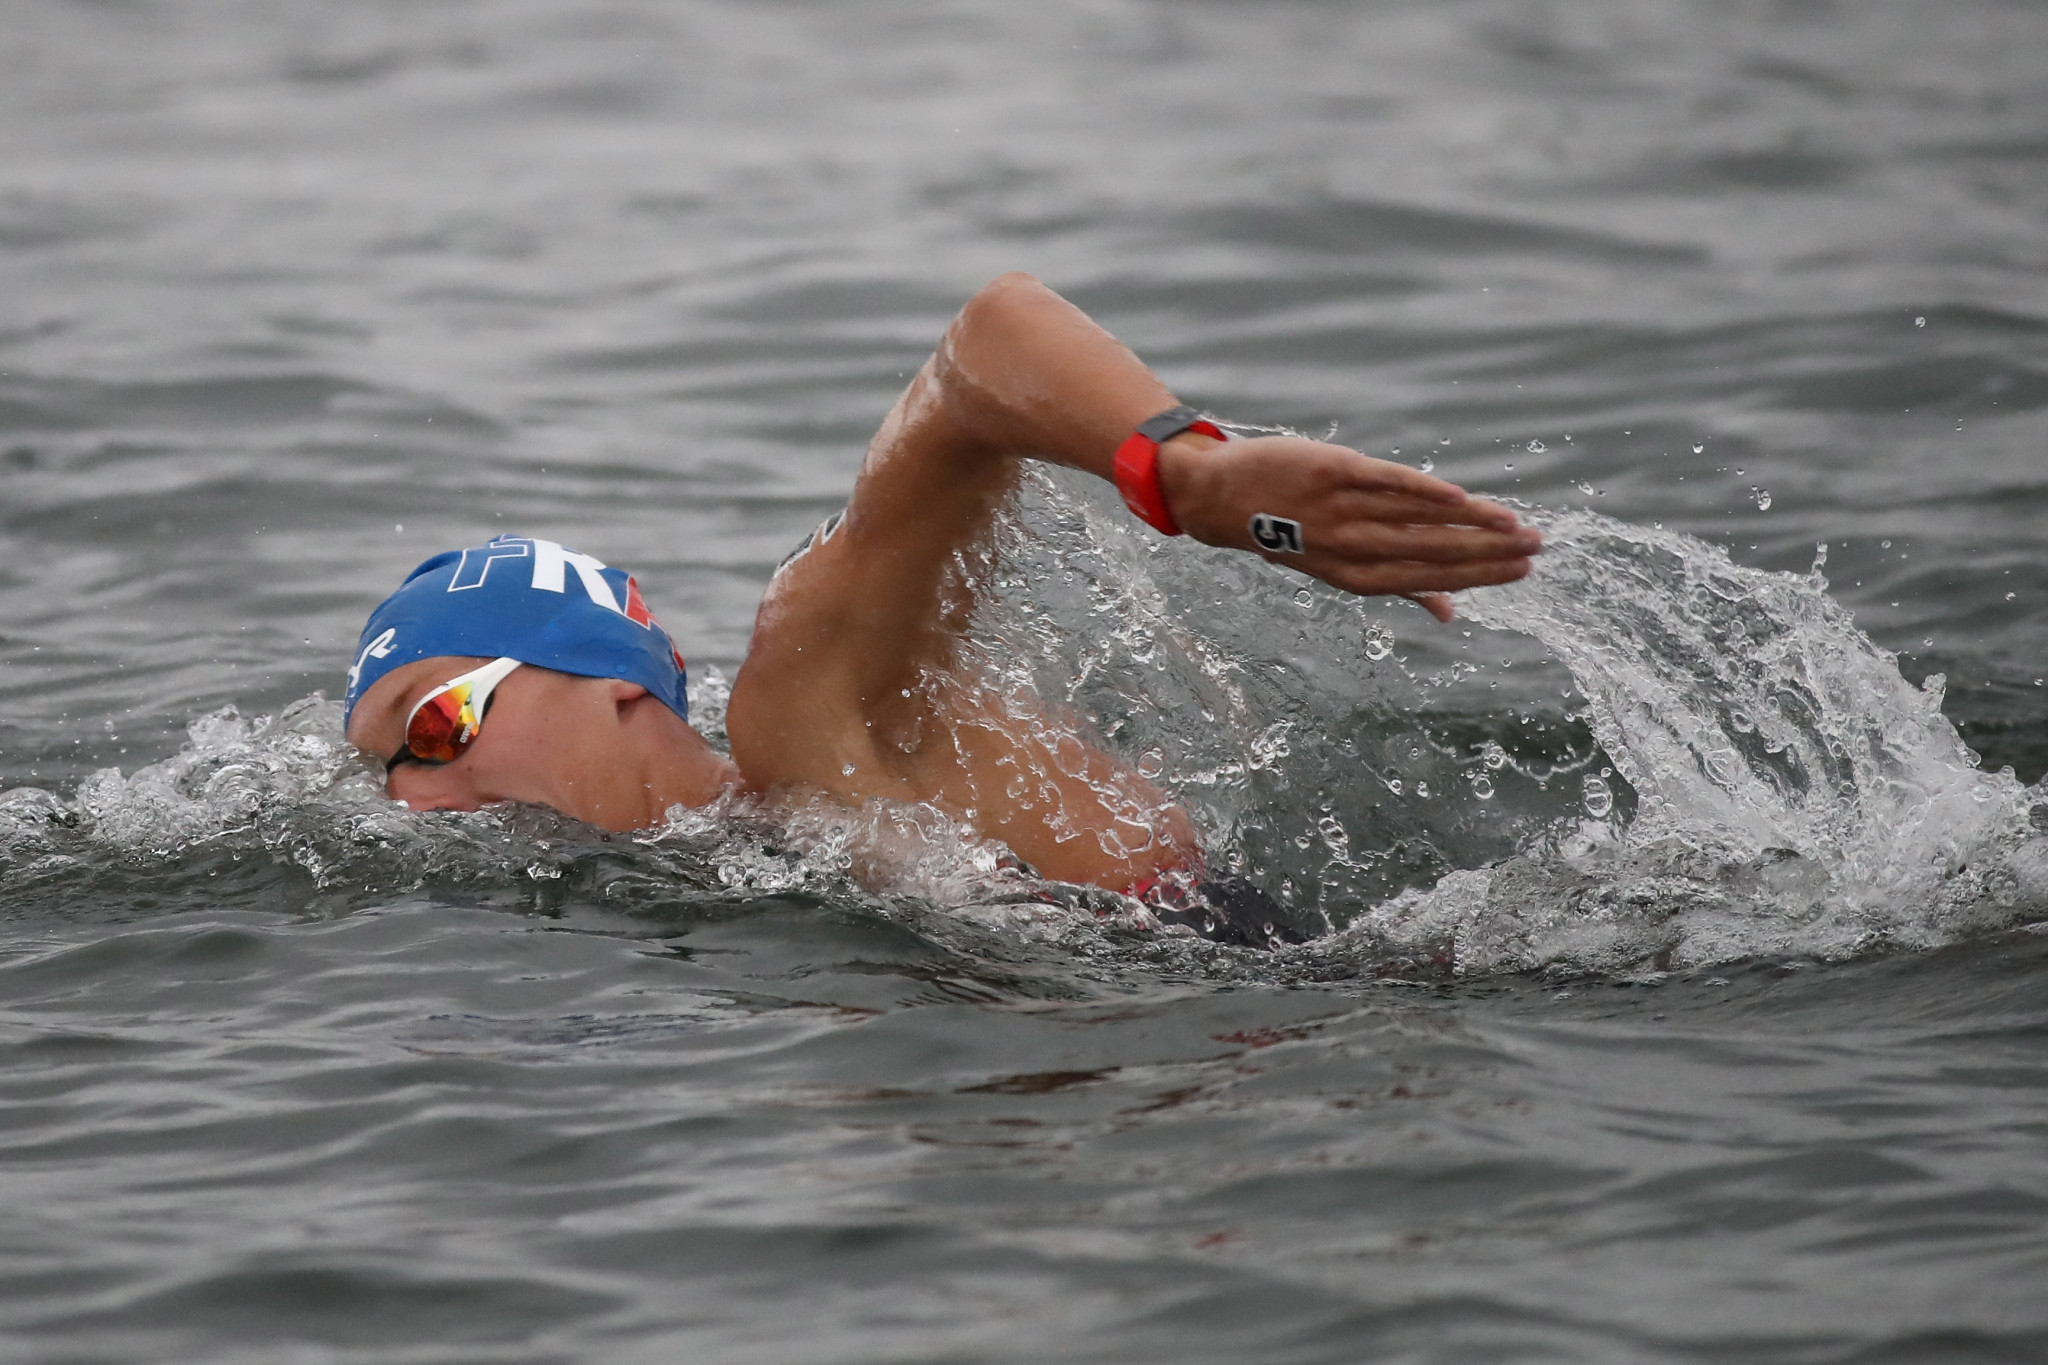 Beck and Olivier triumph at FINA Marathon Swim World Series opener in Doha